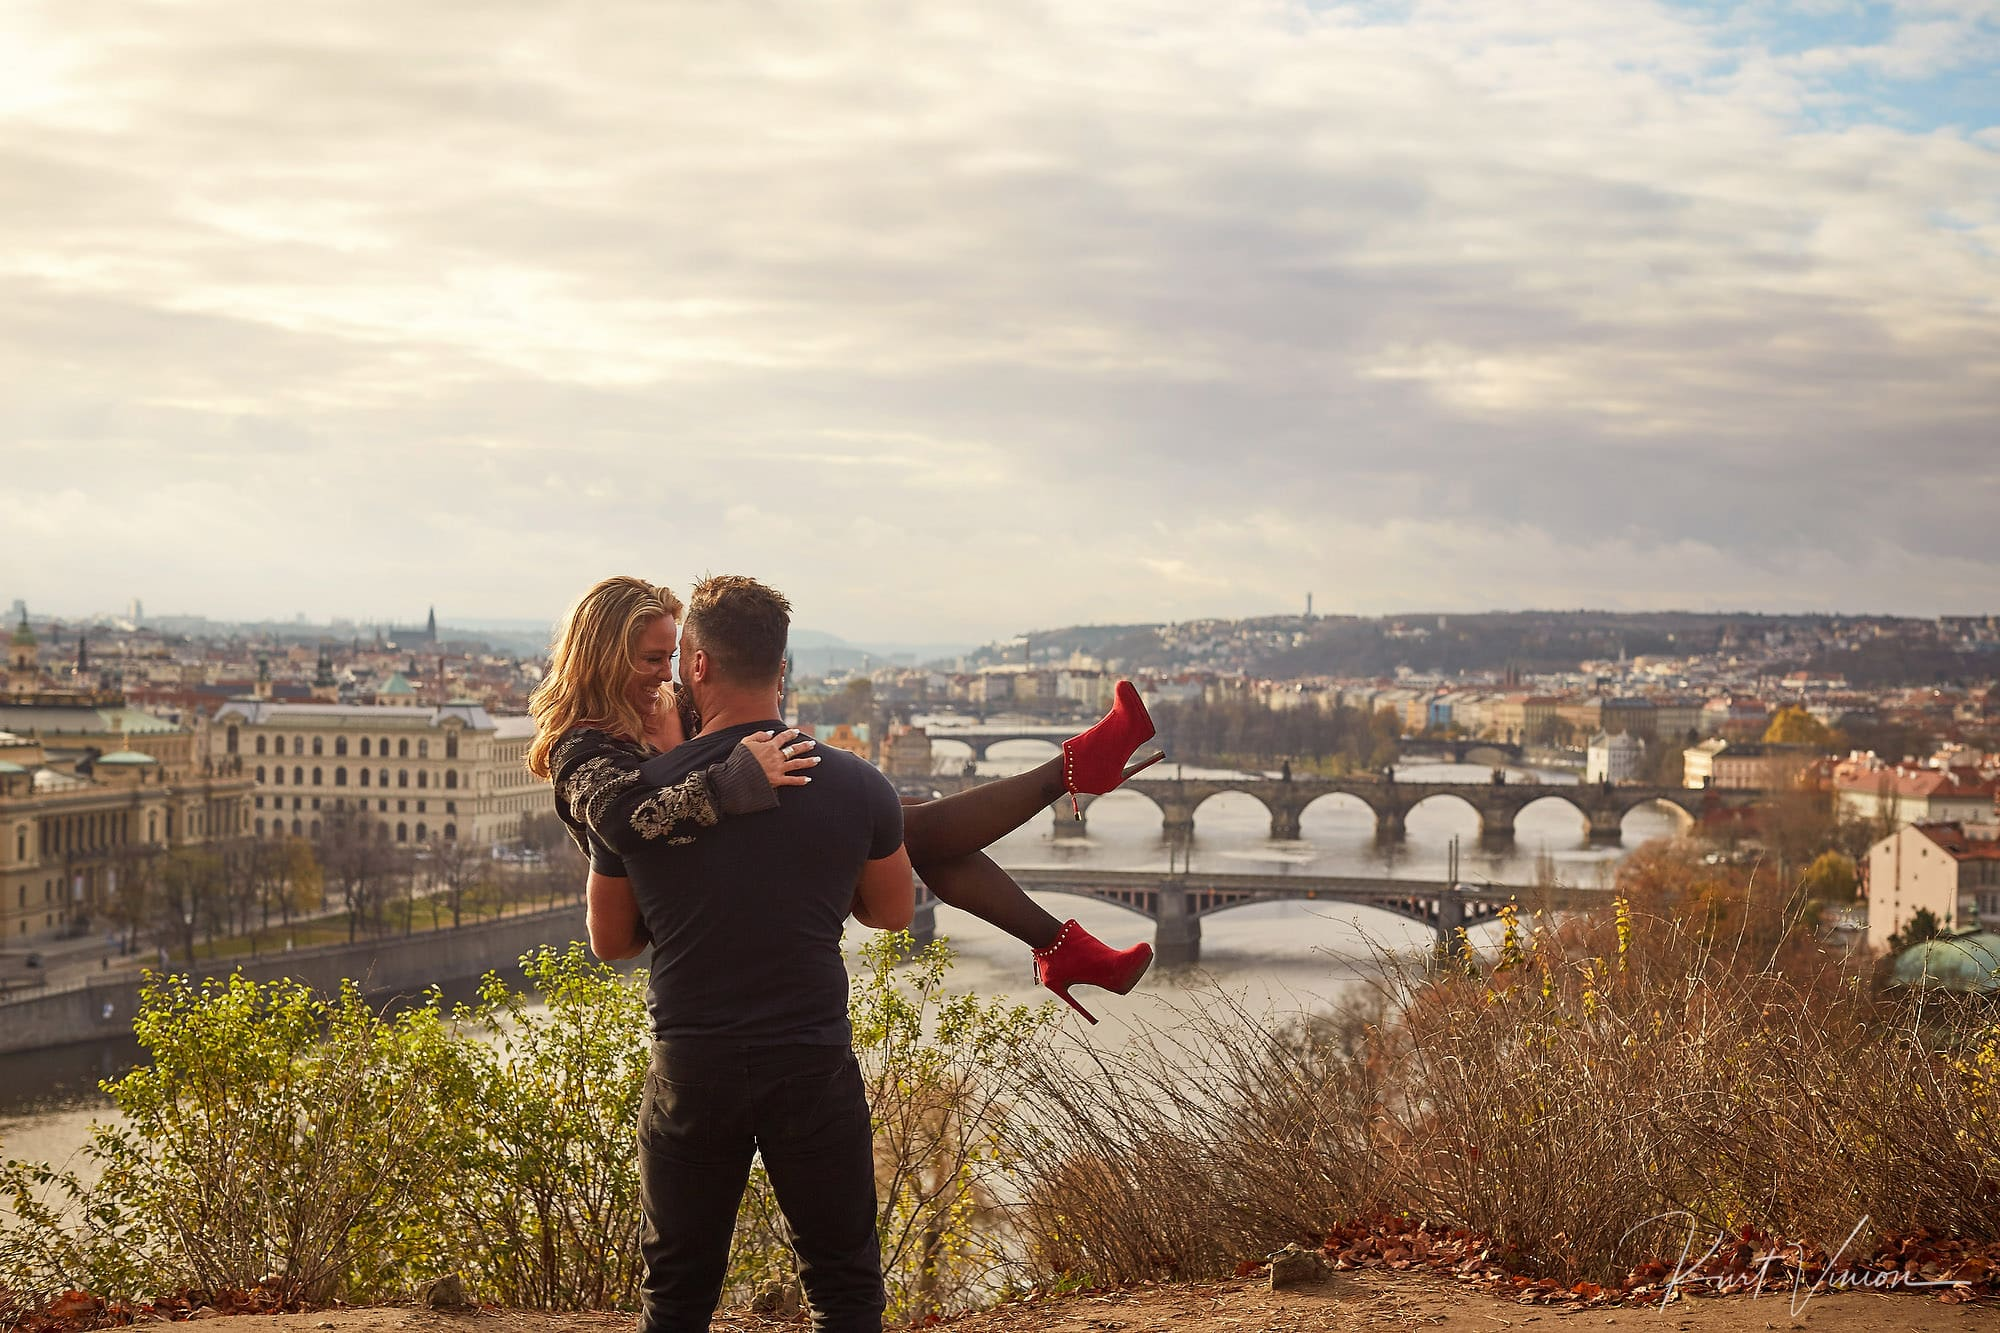 A surprise marriage proposal in Prague featuring Cynthia & Matt